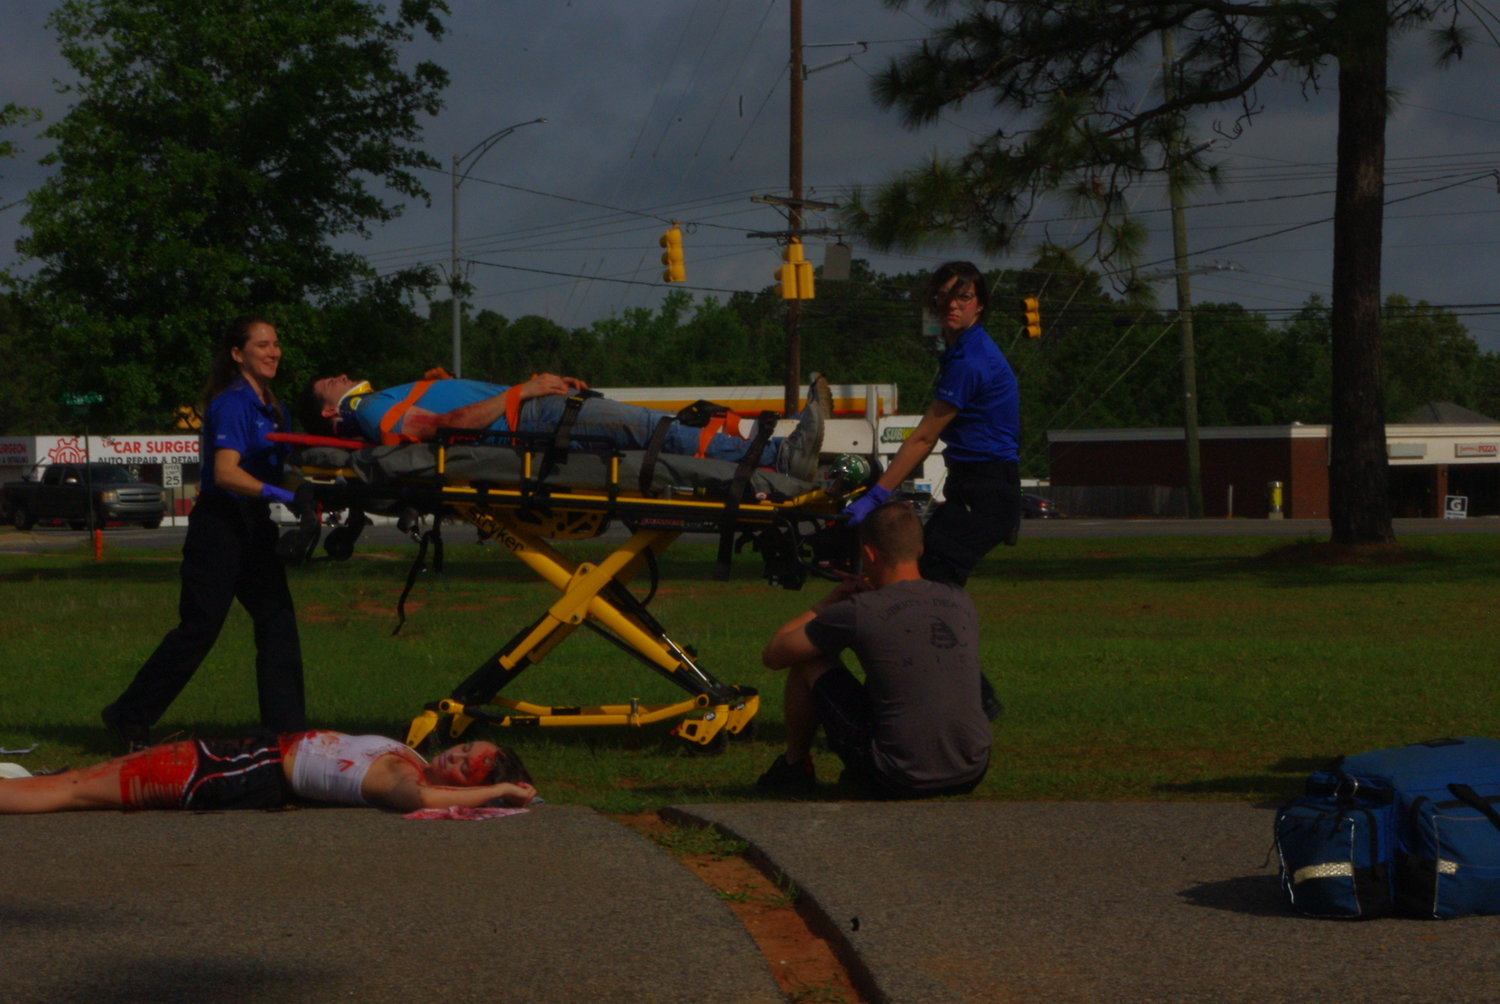 Paramedics load an accident victim on a gurney during a distracted driving accident simulation at Daphne High School.